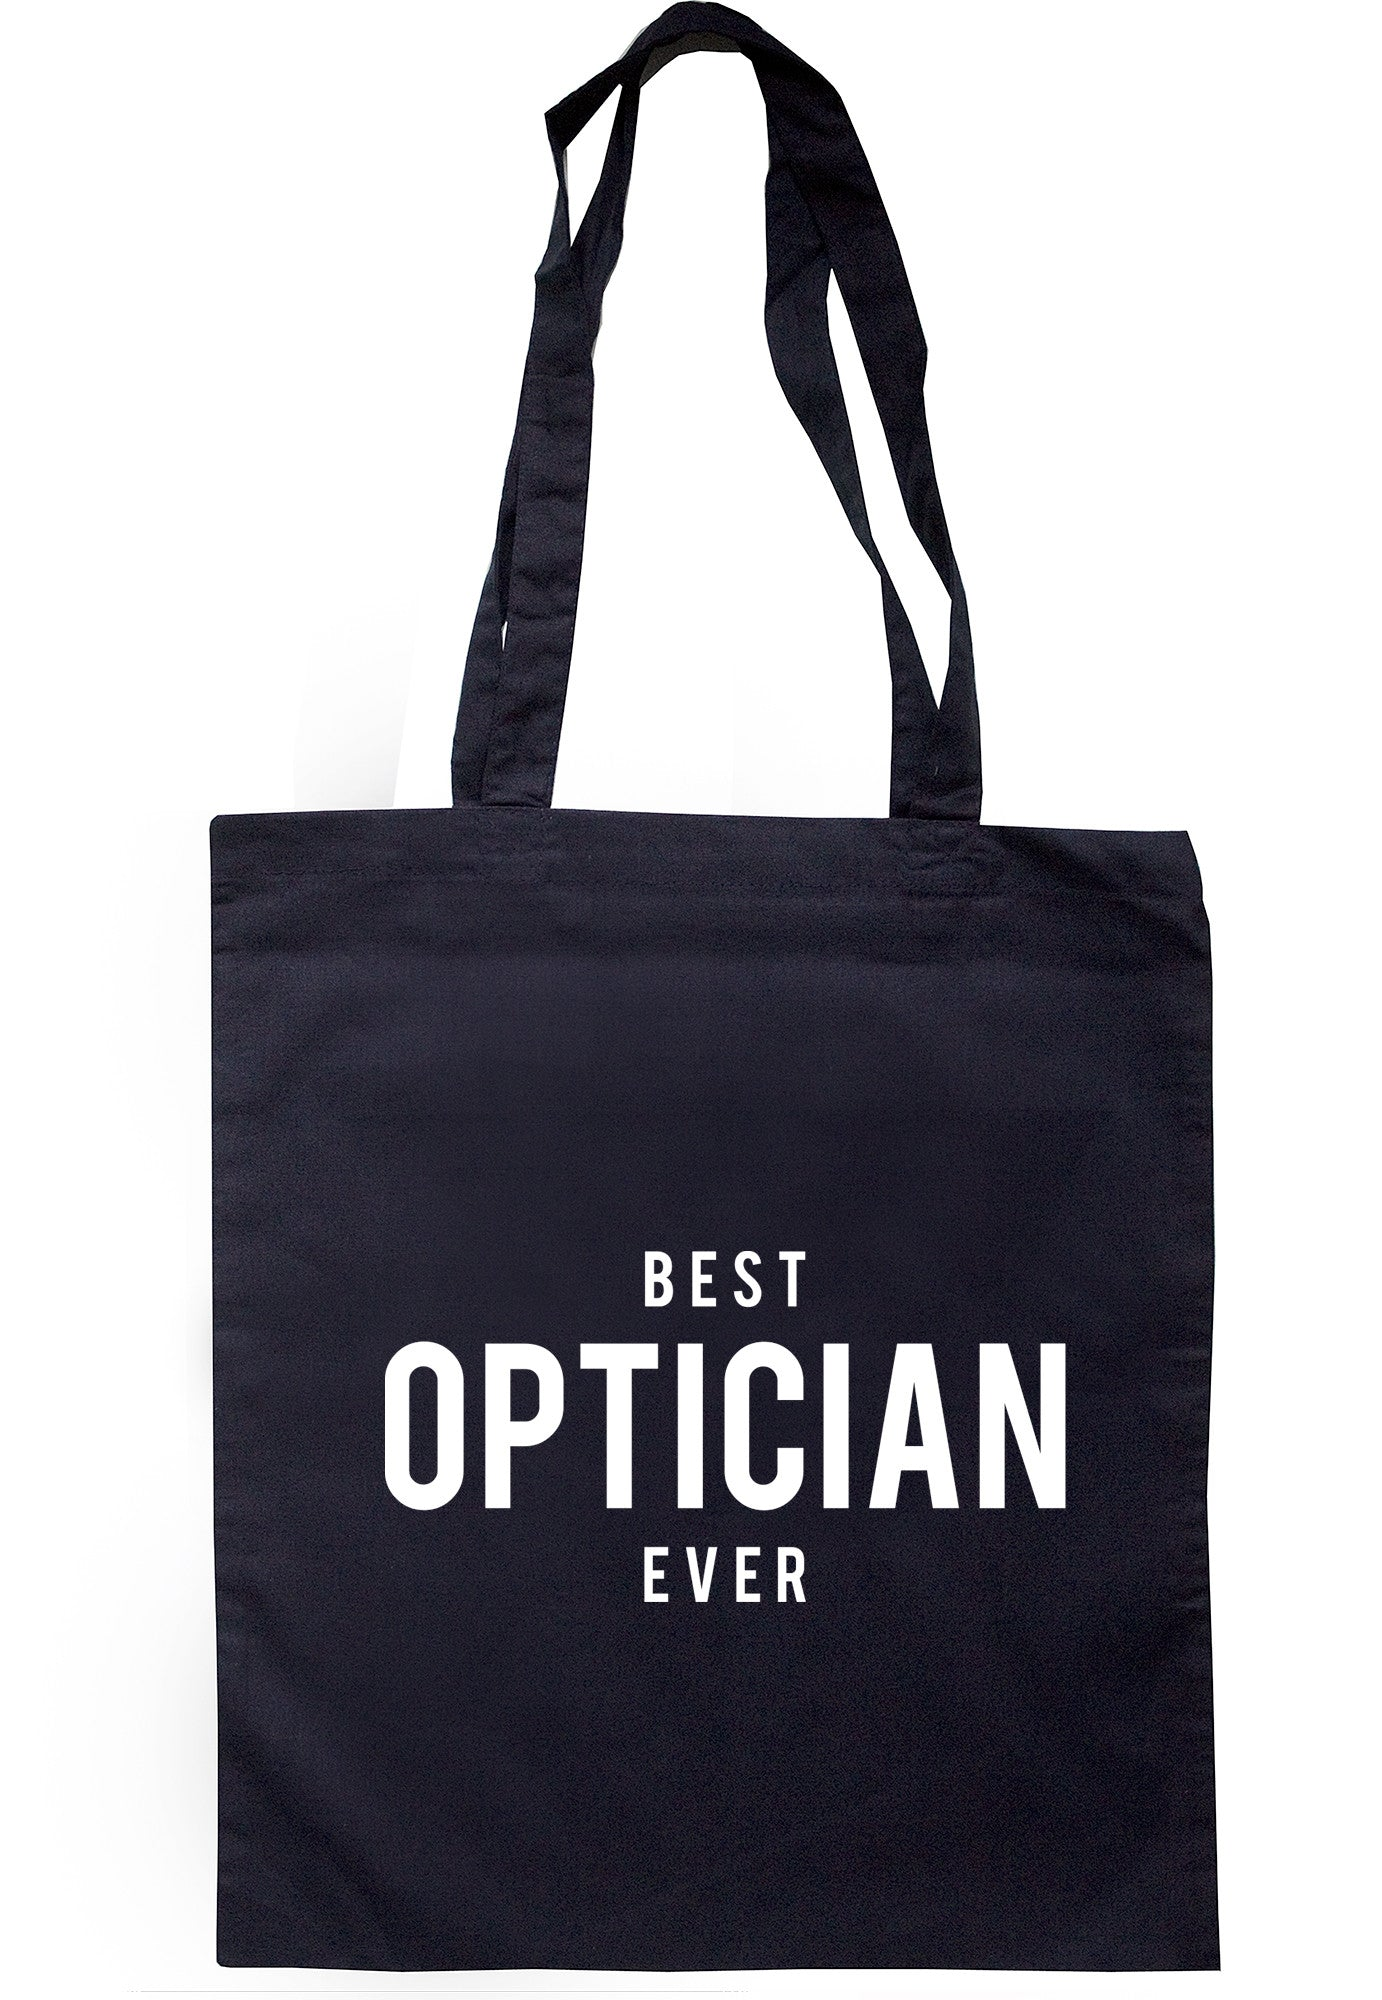 Best Optician Ever Tote Bag TB1287